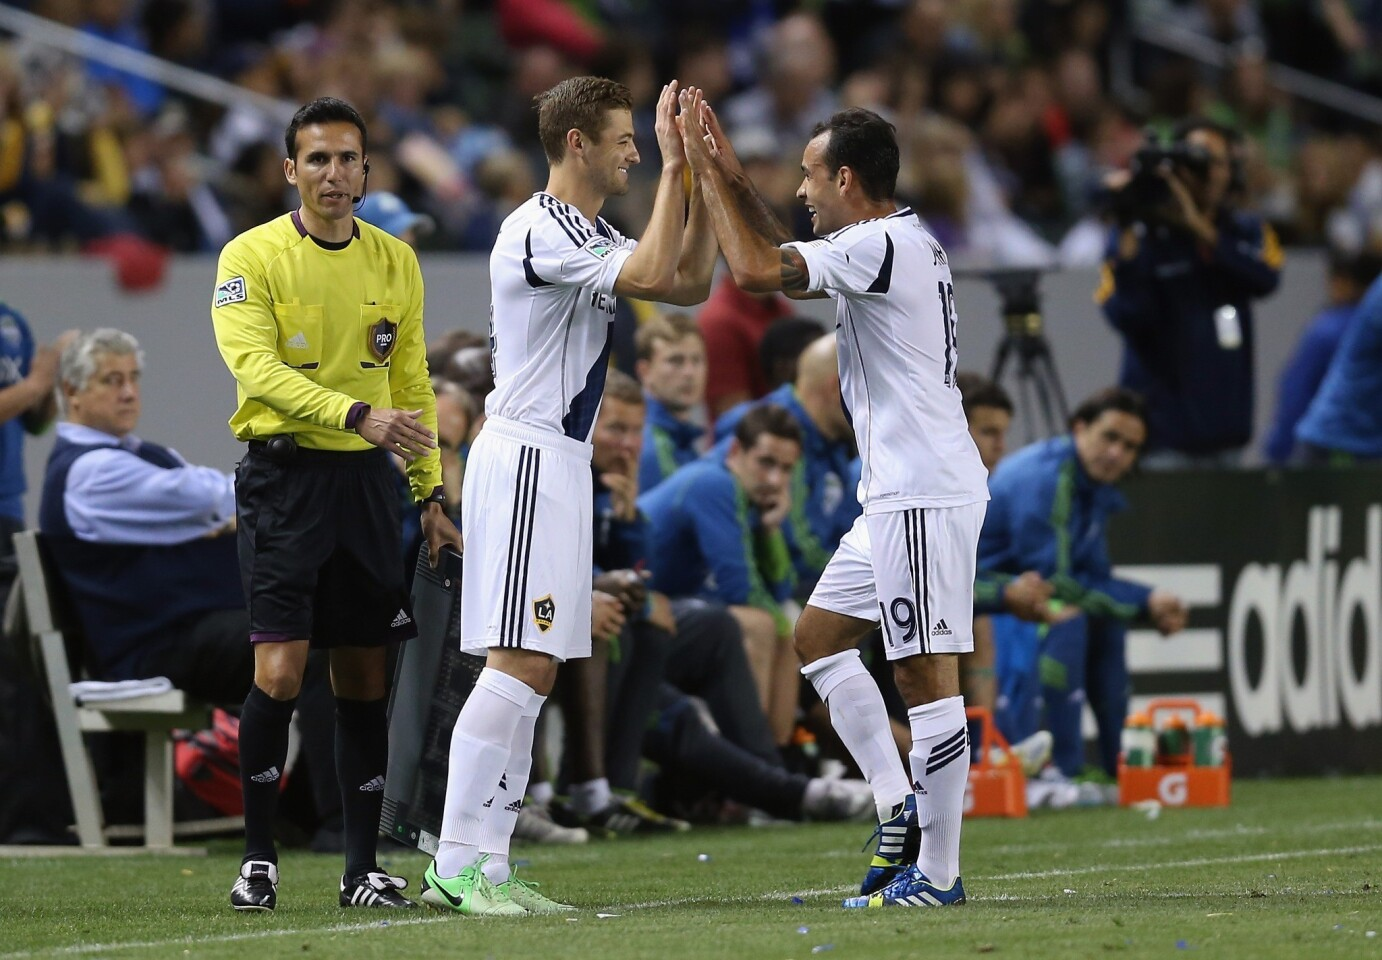 Midfielder Robbie Rogers, entering the game for teammate Juninho in the 77th minute Sunday night, became the first openly gay male athlete in a major U.S. sports league when he made his debut for the Galaxy on Sunday night in a 4-0 victory over the Seattle Sounders.